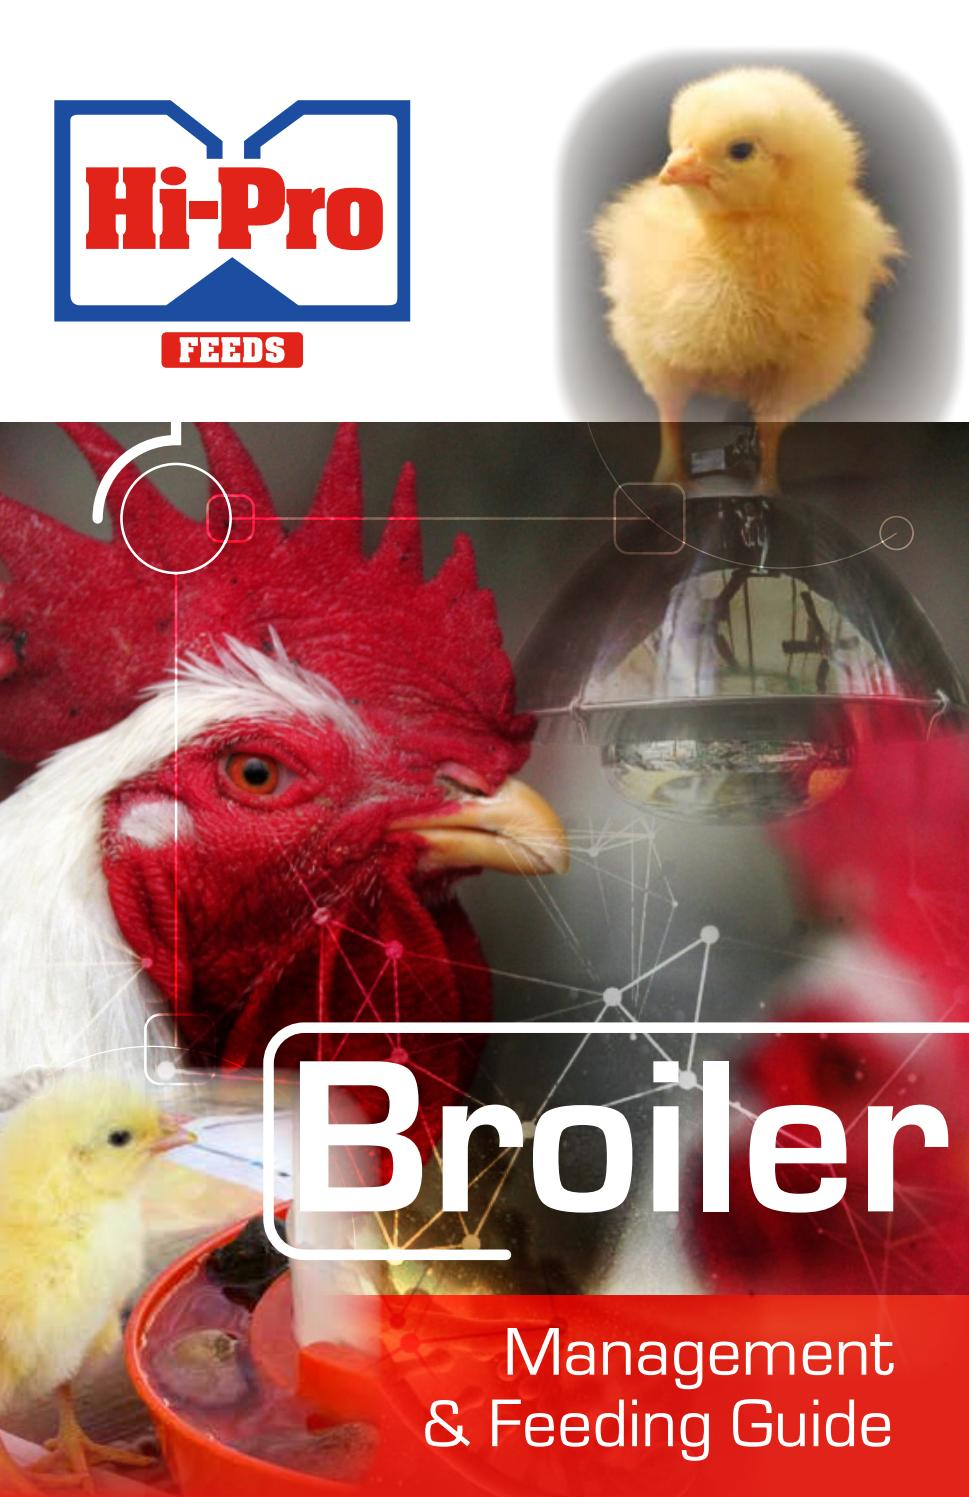 Hi-Pro Broiler Management & Feeding Guide by GroupPR - issuu